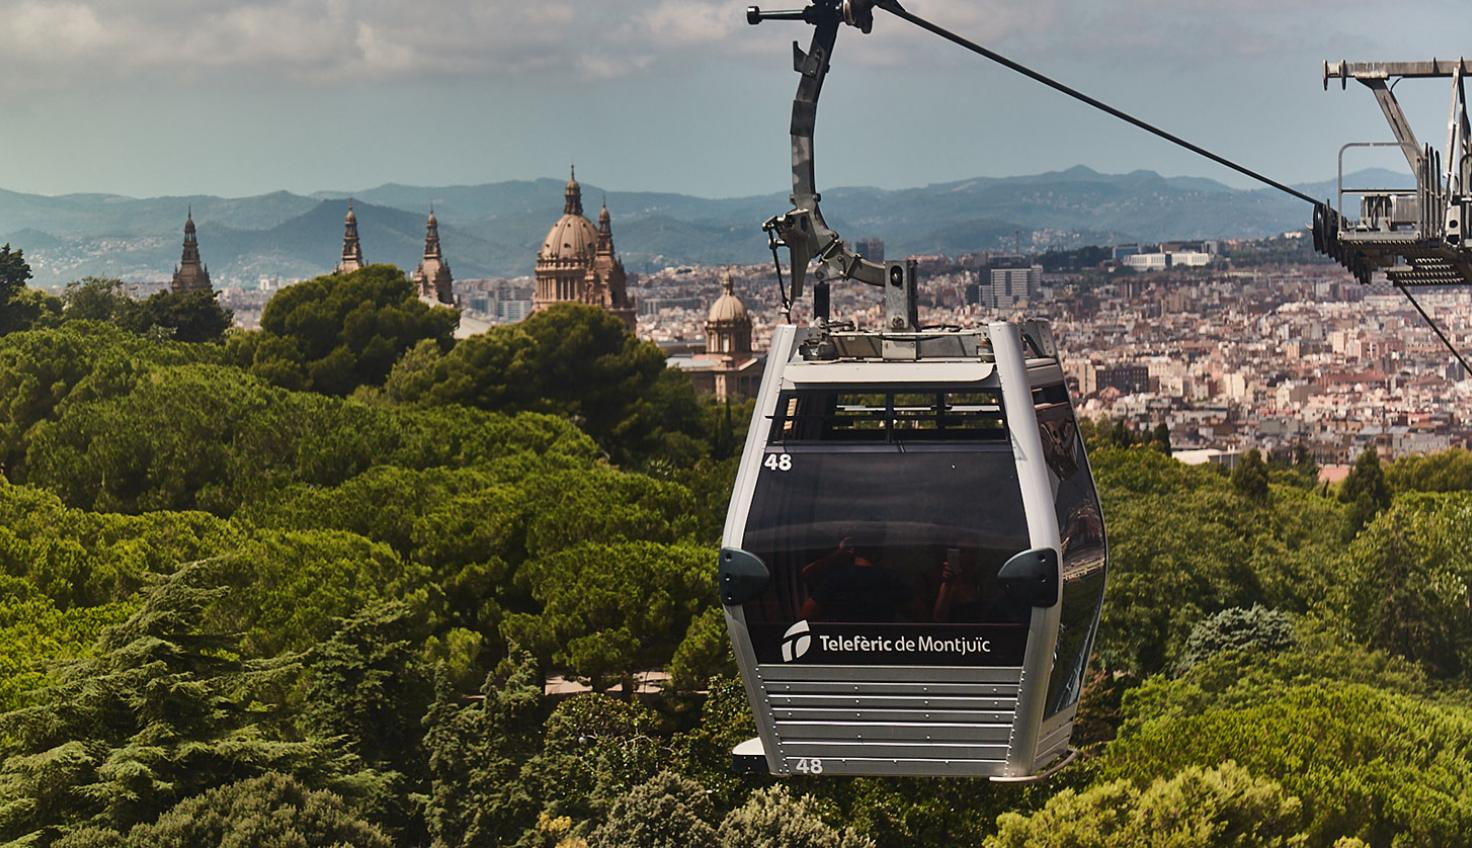 Photo Montjuïc Cable Car Barcelona